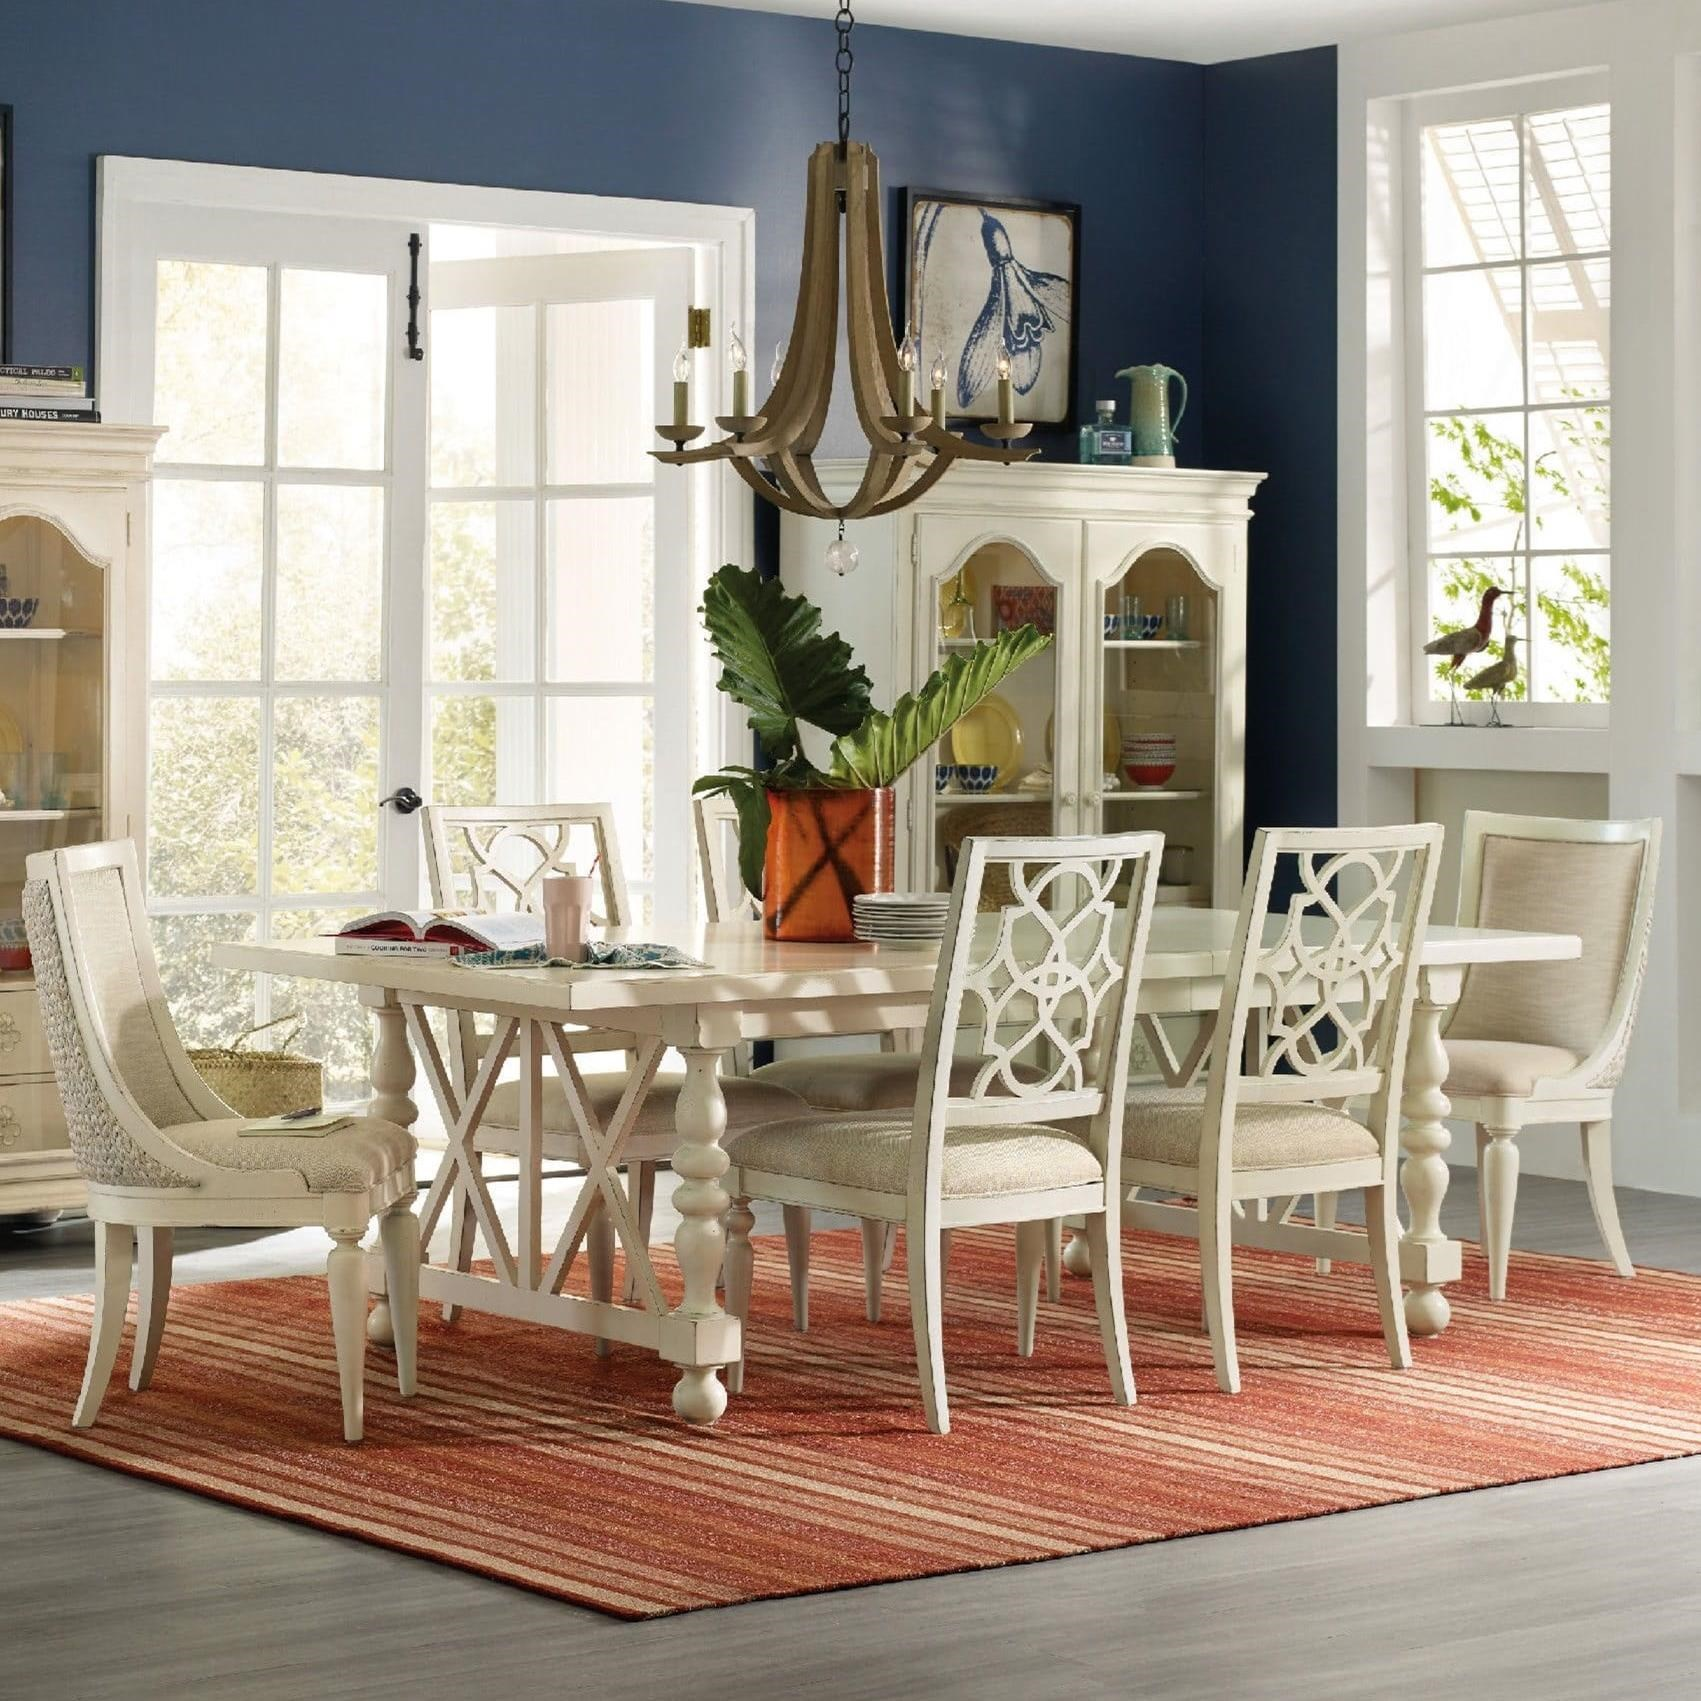 Hooker Furniture Sandcastle 7 Piece Dining Set - Item Number: 5900-75200+2x510+4x410-WH